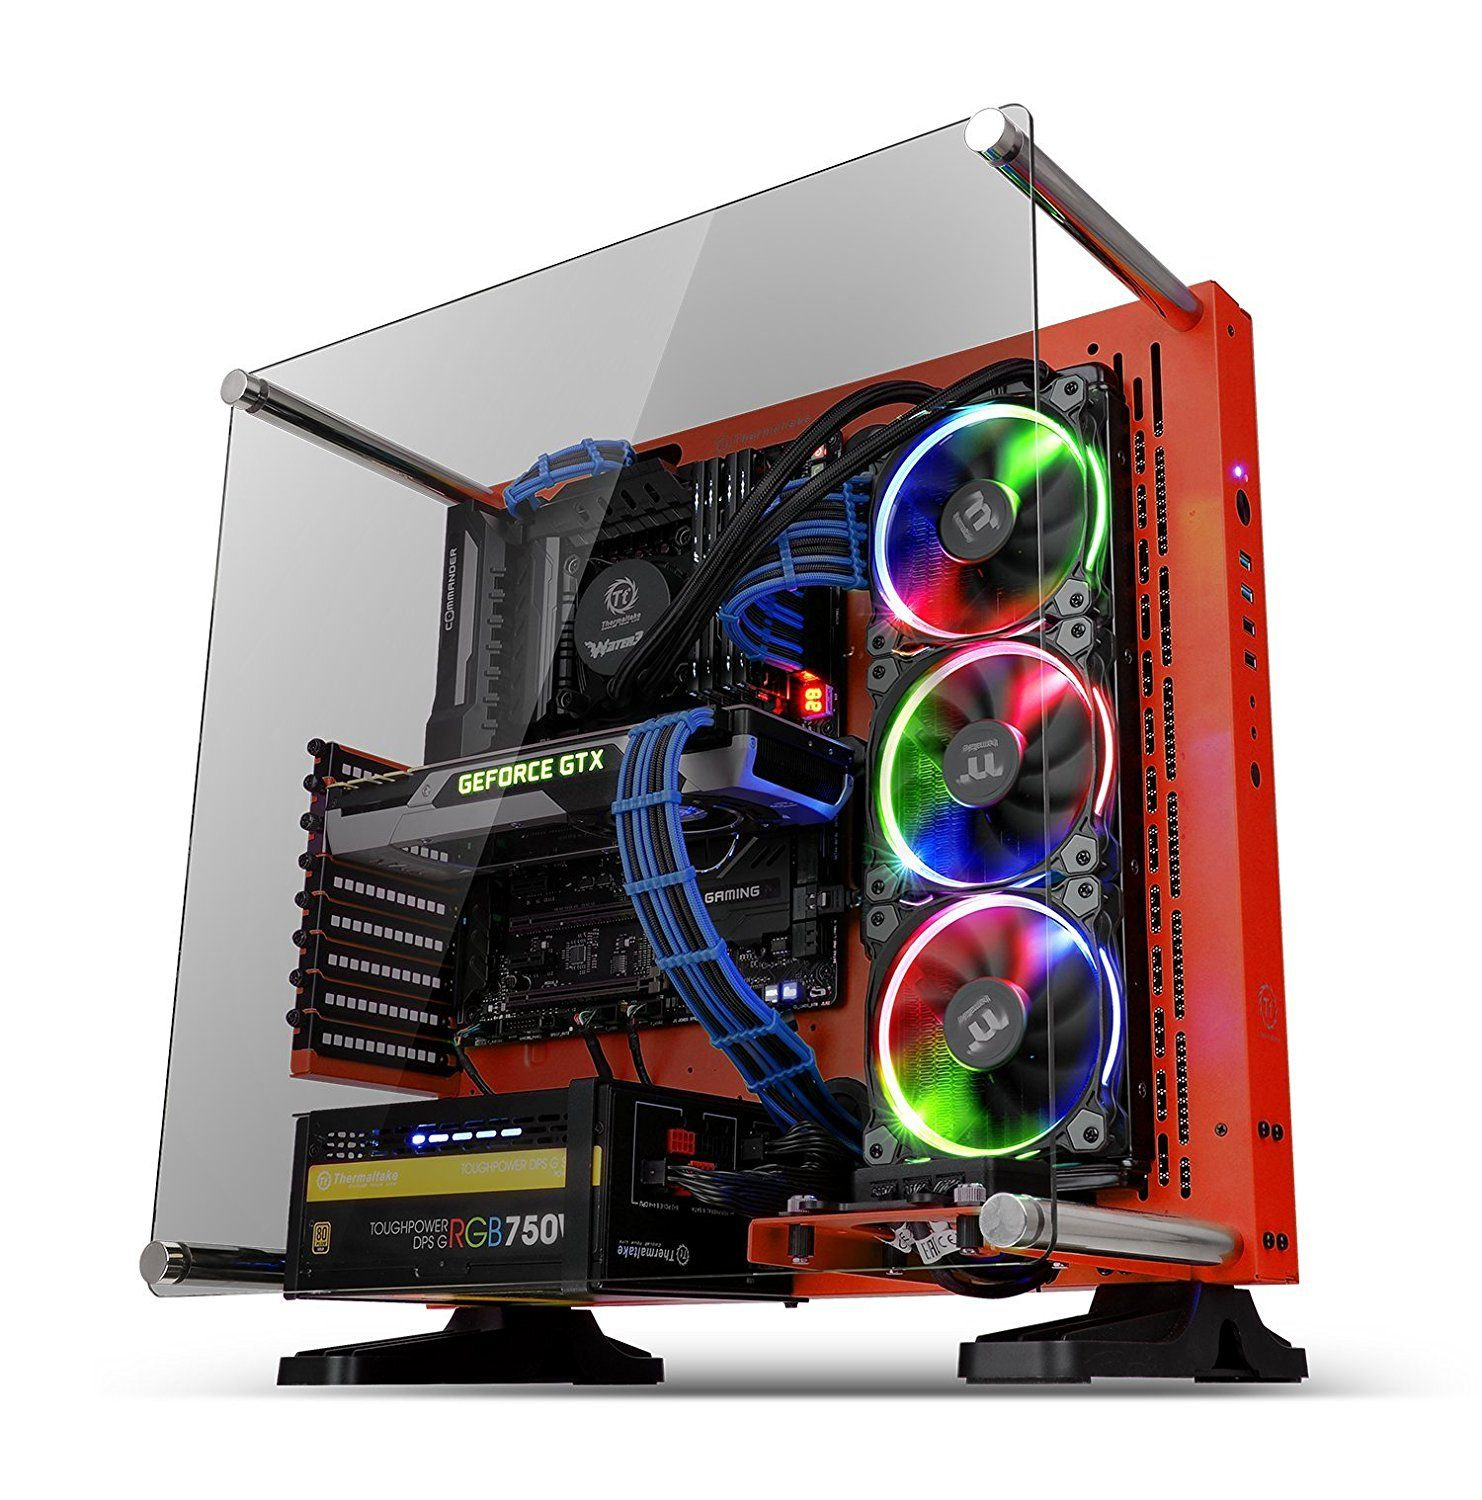 Thermaltake Core P3 Atx Tempered Glass Gaming Computer Case Chassis Open Frame Panoramic Viewing Glass Wall Mount Riser Ca Computer Case Open Frame Mini Itx